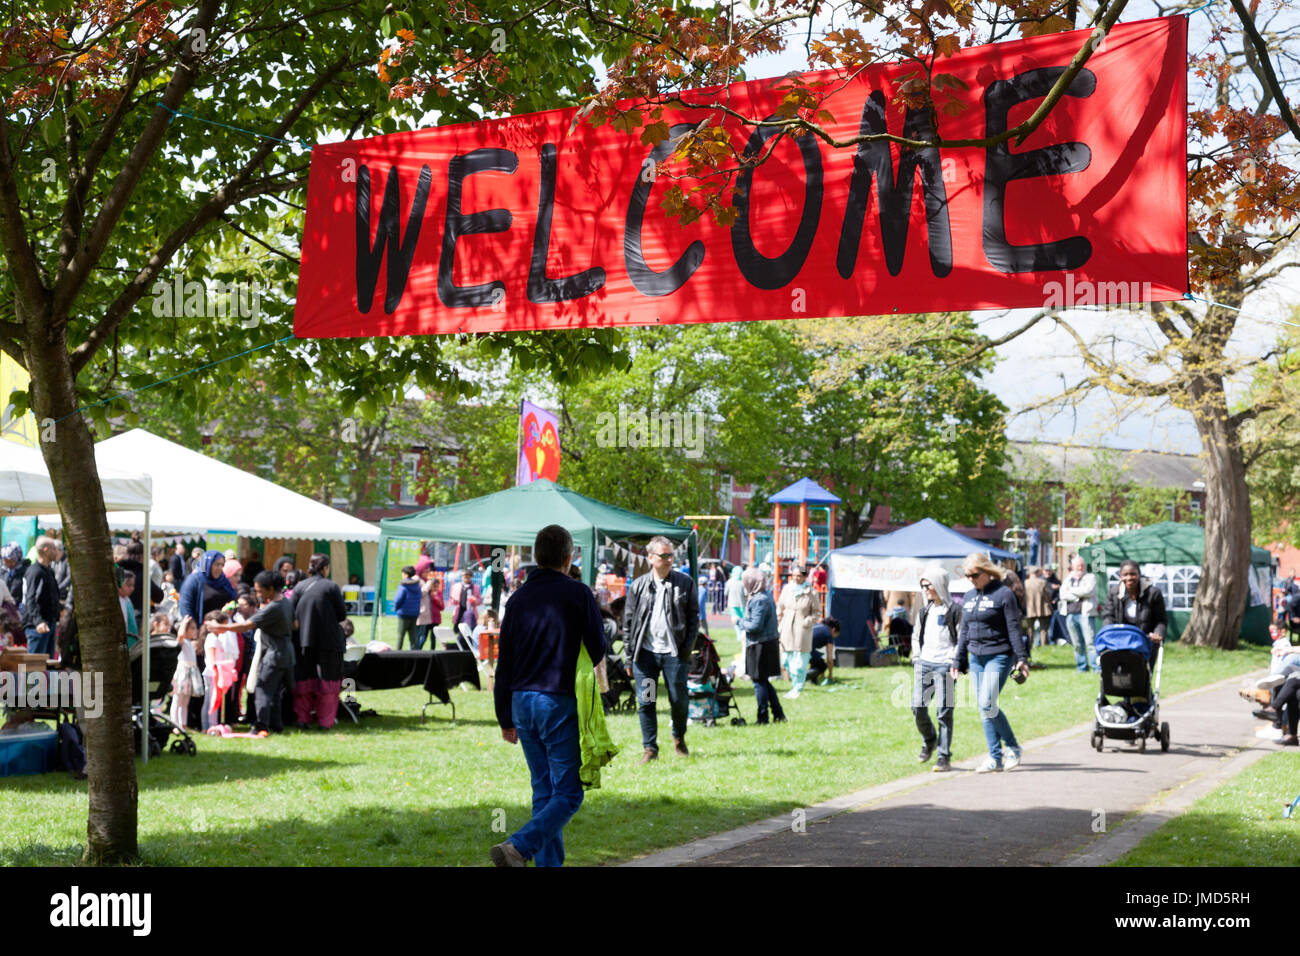 Welcome sign at the Celebrate Festival, Whalley Range, Greater Manchester - Stock Image